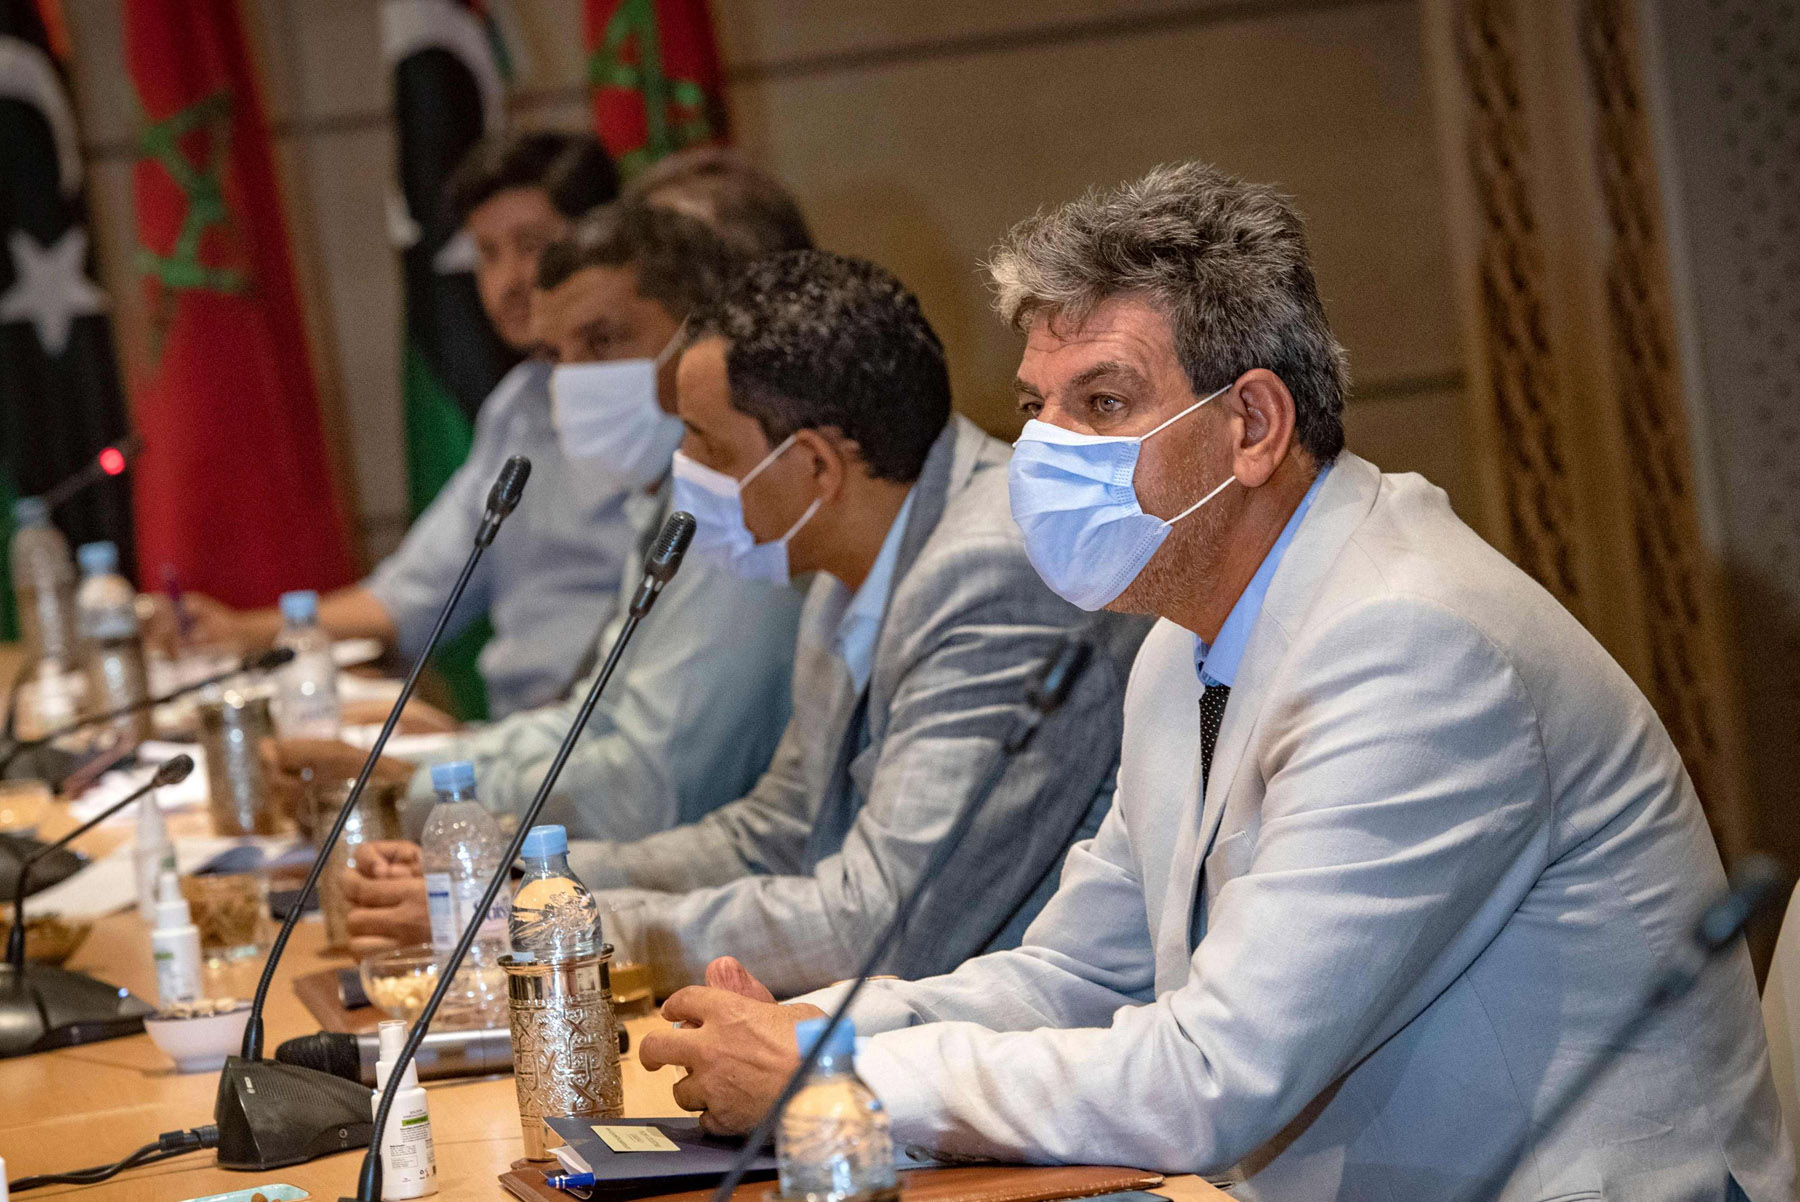 Representatives of Libya's rival administrations attend a meeting in the coastal Moroccan town of Bouznika, south of the capital Rabat, on October 3, 2020. (AFP)